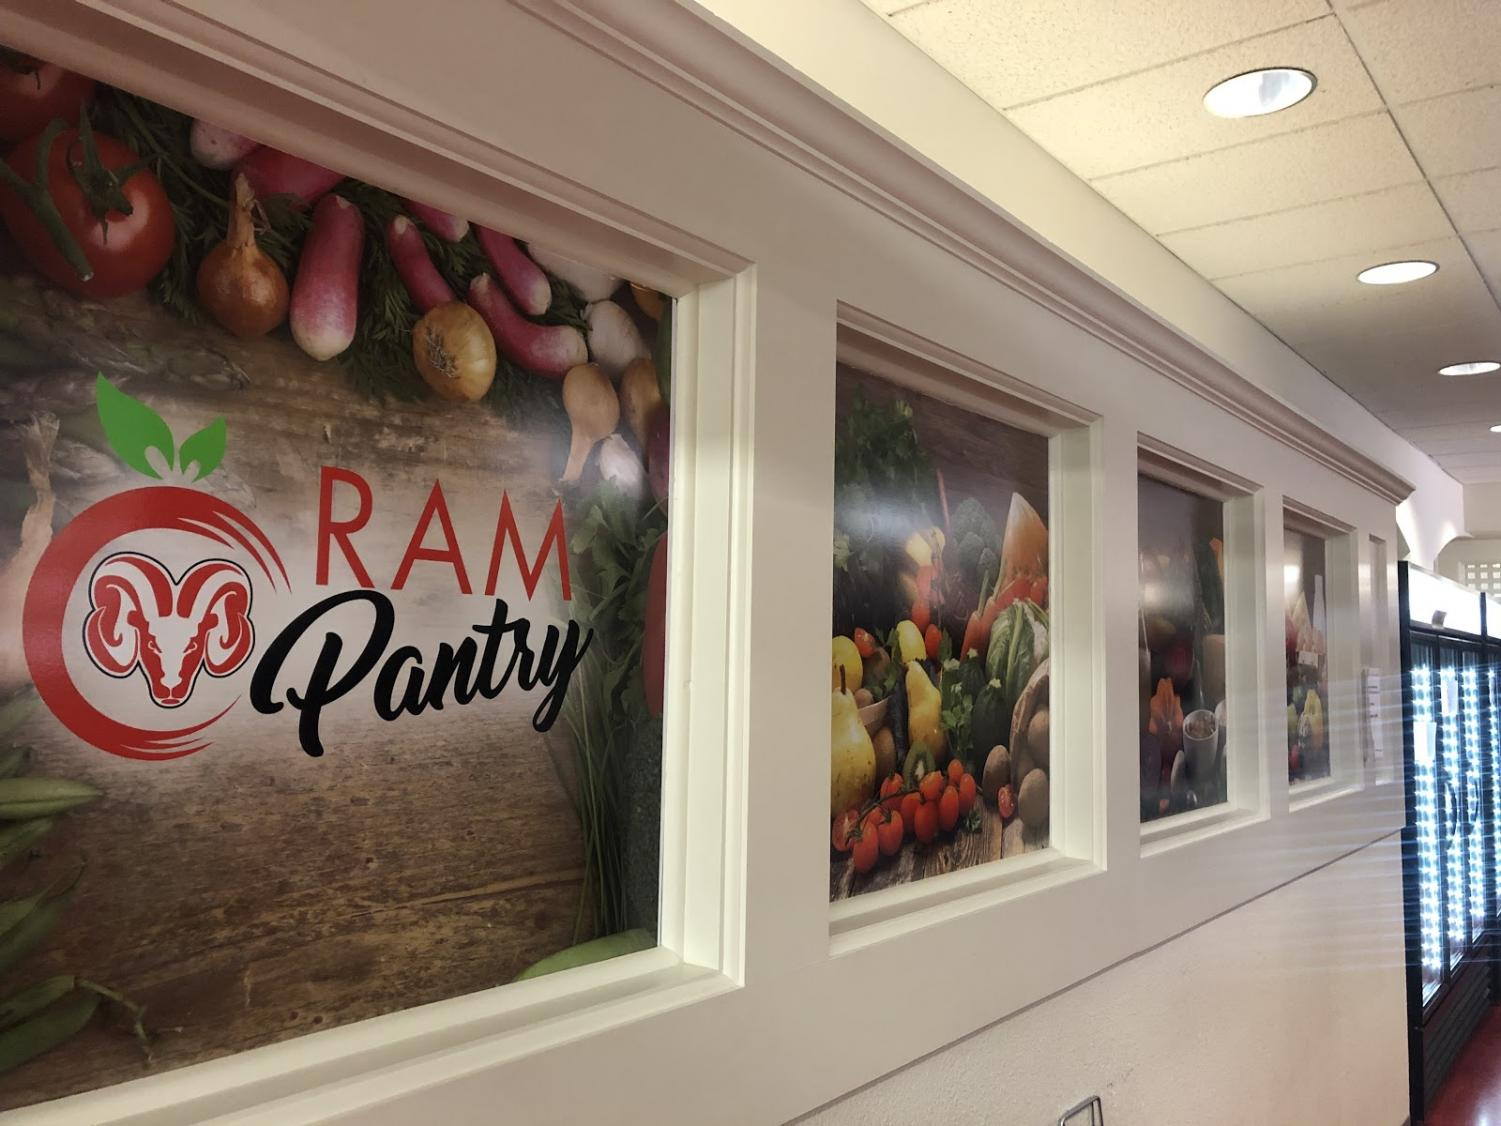 The Ram Pantry, located at the student bookstore, provides free food items to hungry students as long as they have a student ID, Tuesday, Aug. 20, 2019.